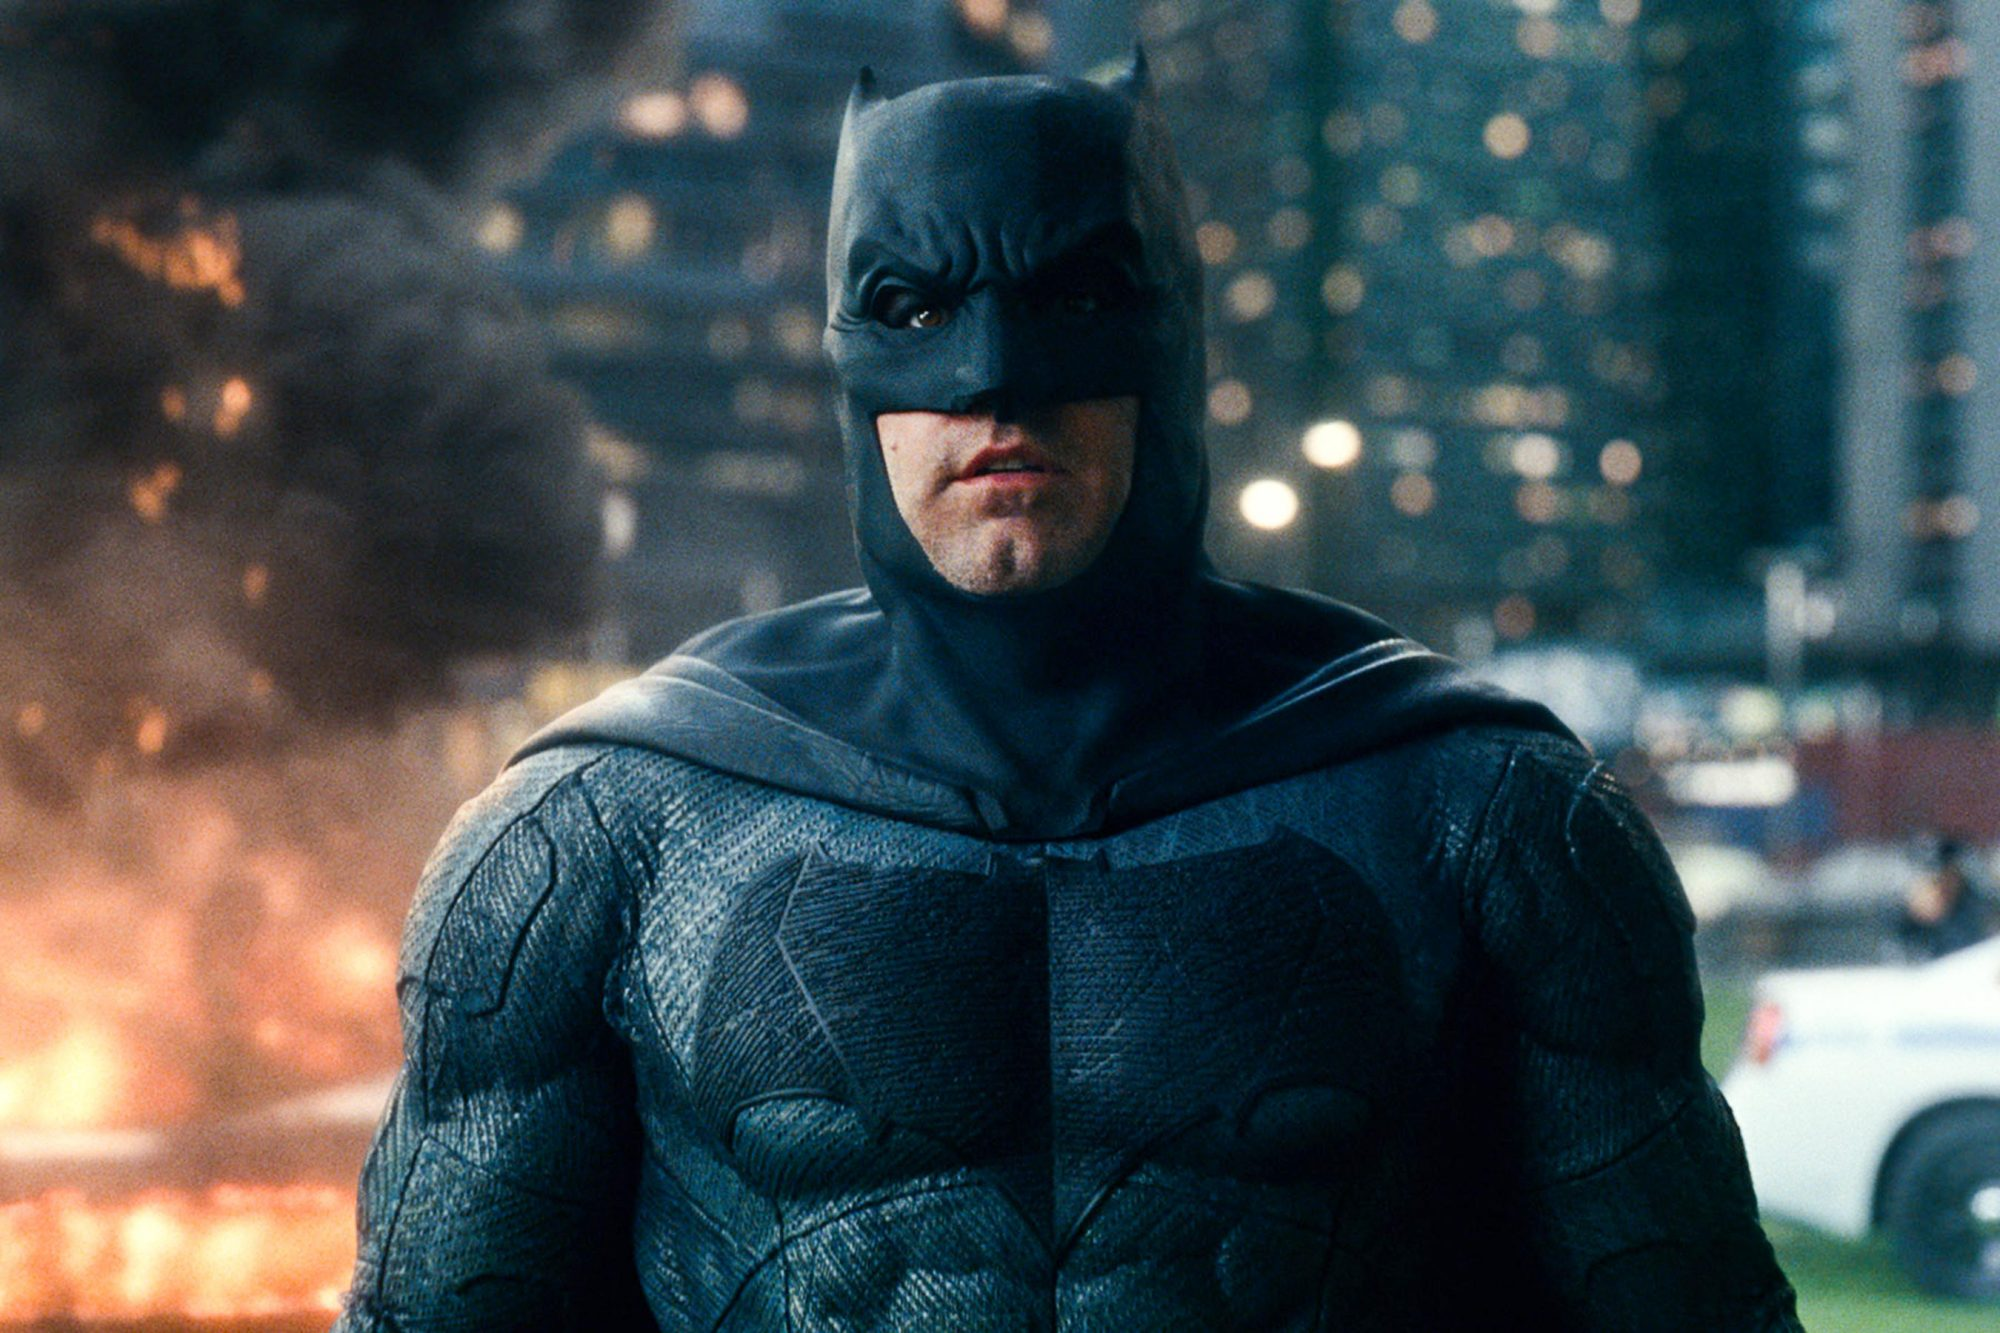 Miss: Ben Affleck's Batman